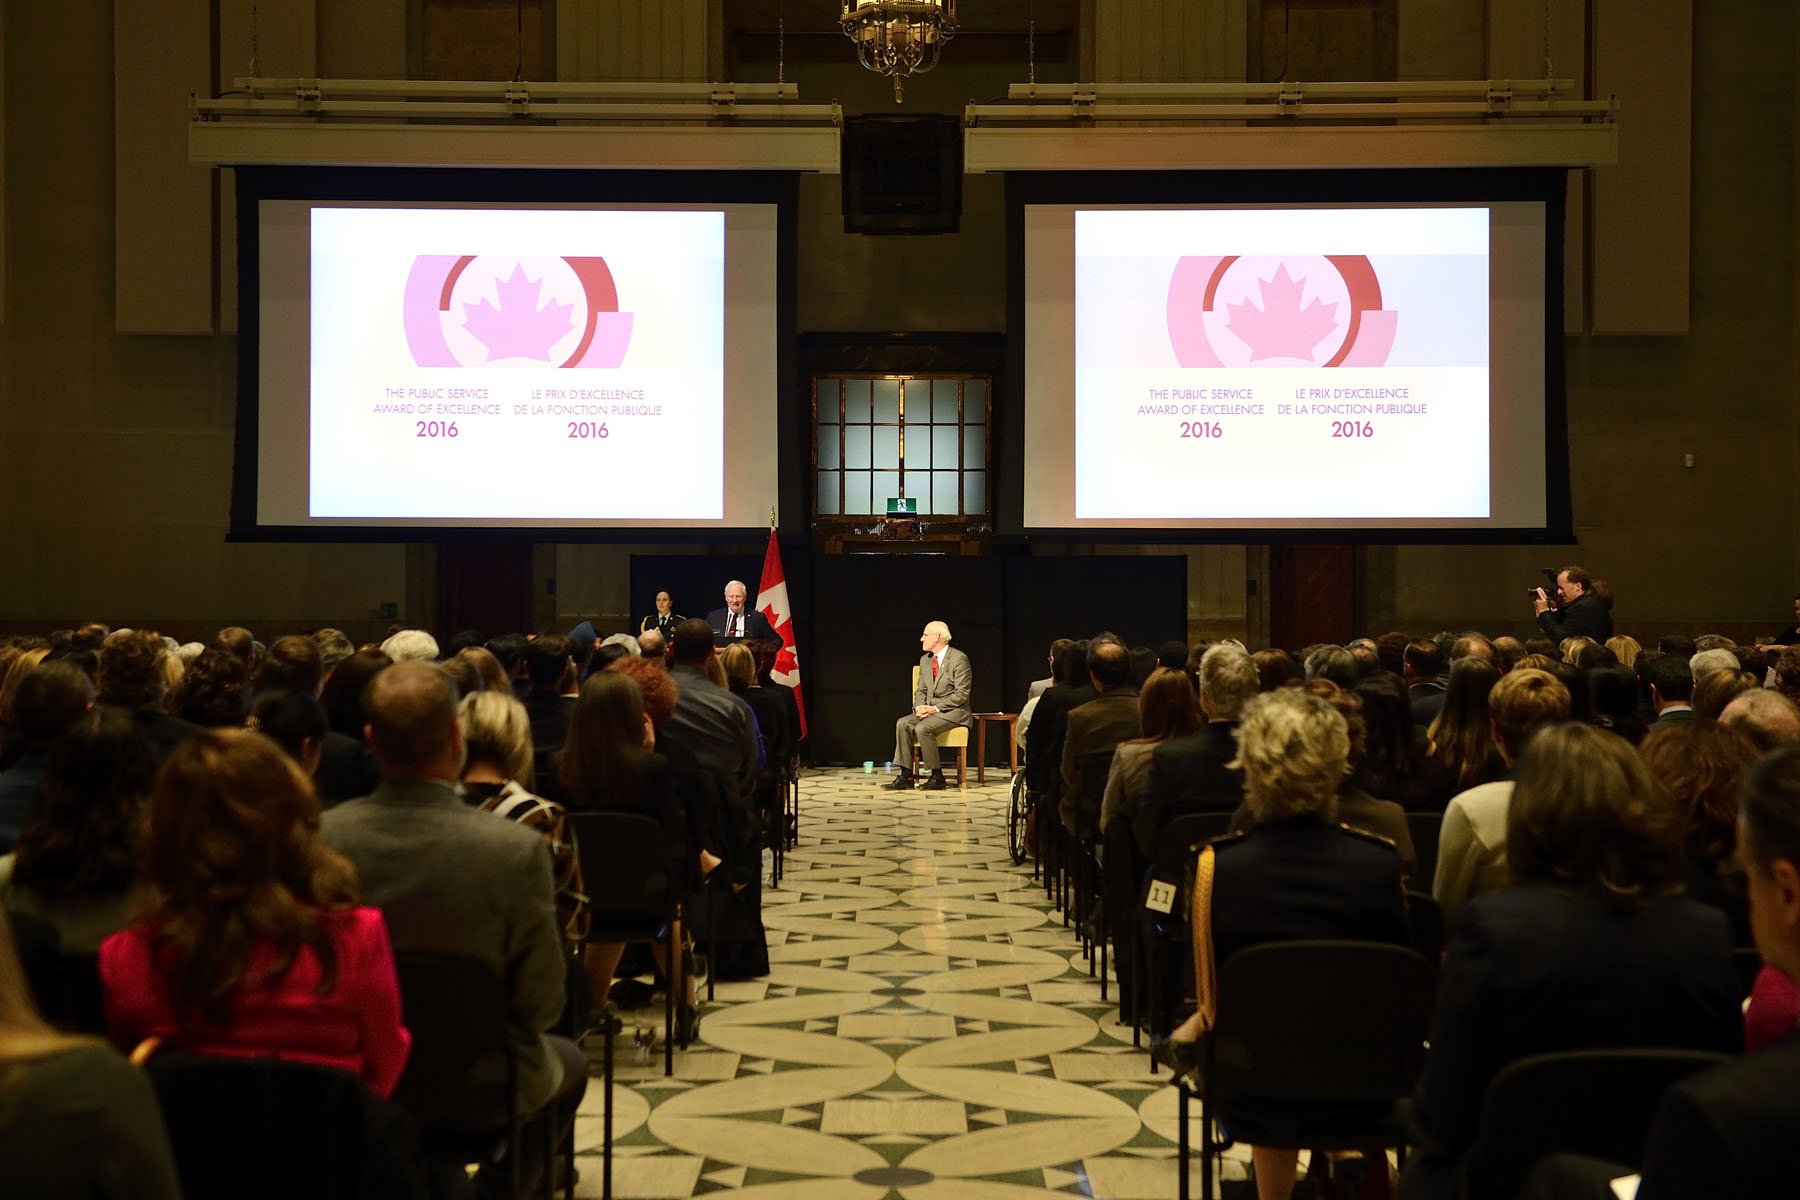 His Excellency the Right Honourable David Johnston, Governor General of Canada, and Mr. Michael Wernick, Clerk of the Privy Council, Secretary to the Cabinet and Head of the Public Service, presented the 2016 Public Service Award of Excellence on Thursday, October 20, 2016, at the Sir John A. Macdonald Building in Ottawa.